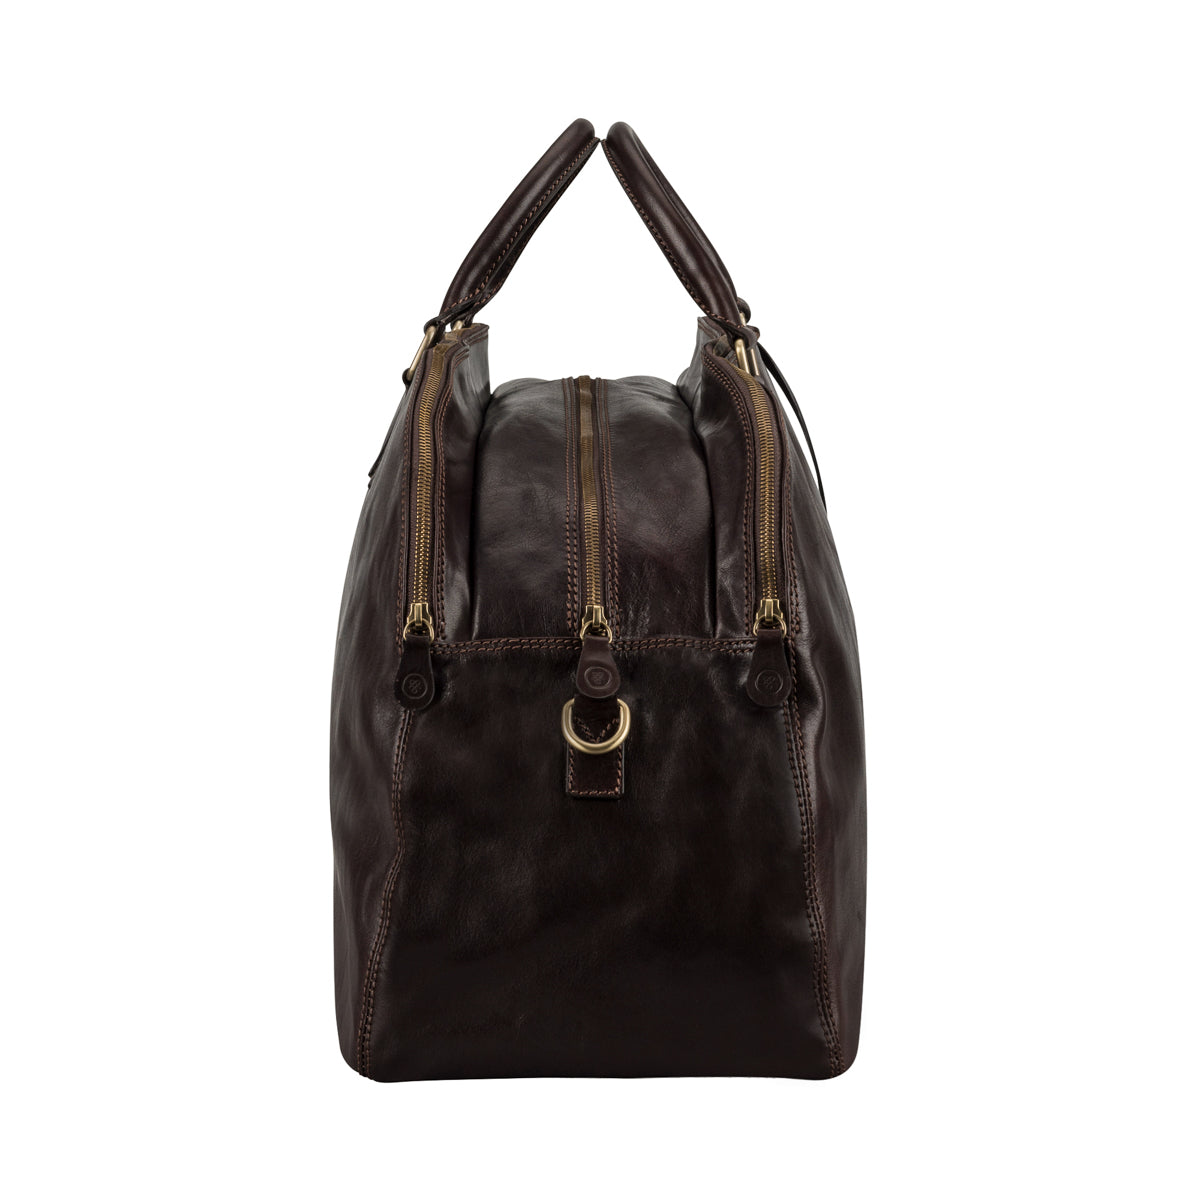 Image 3 of the 'Liliana' Dark Chocolate Veg-Tanned Leather Holdall